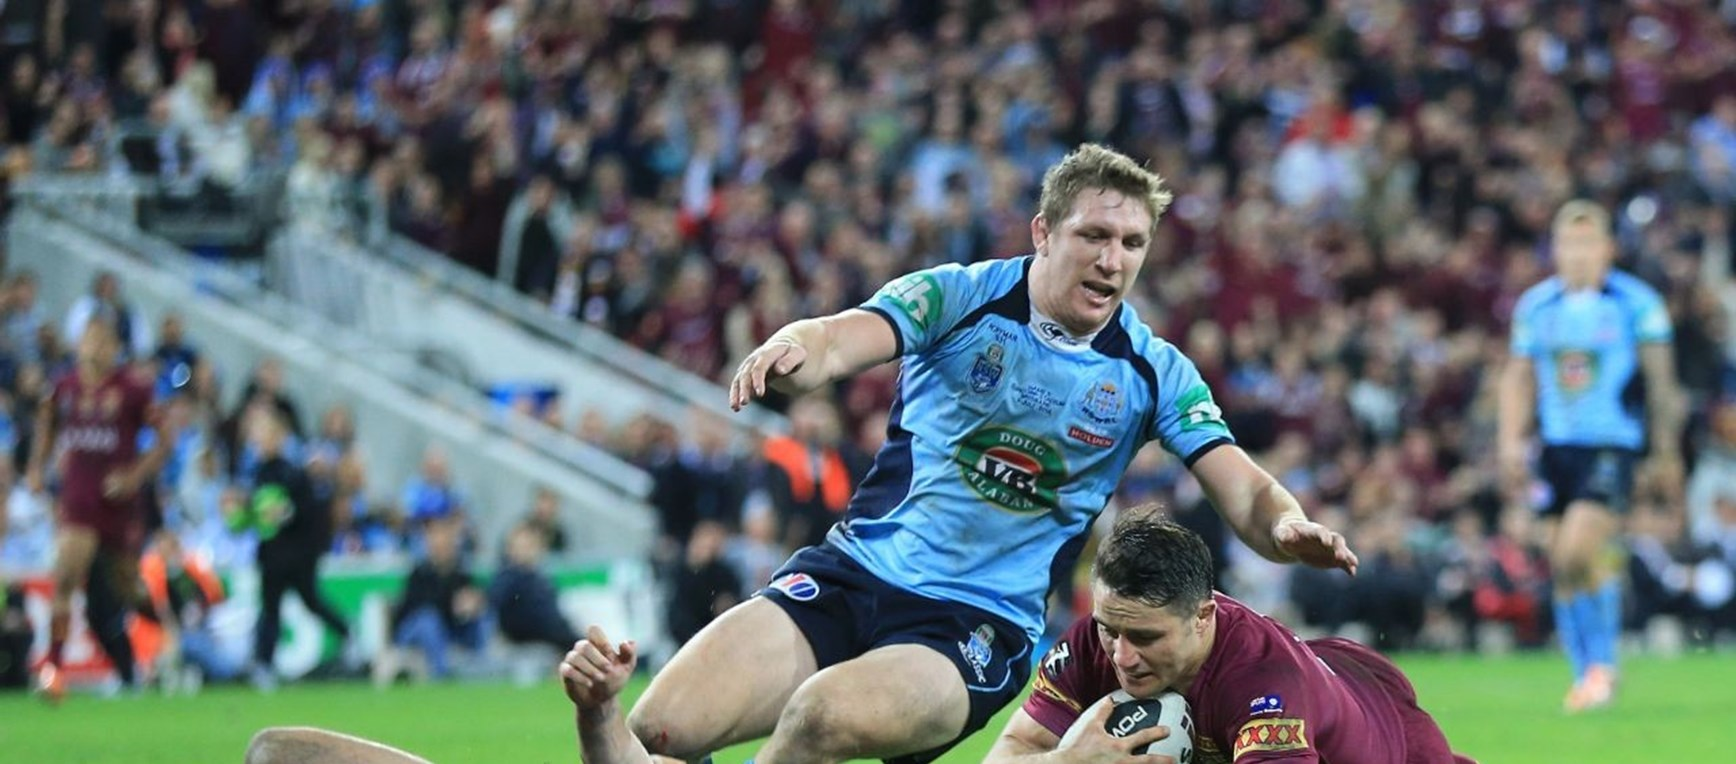 Gallery: State of Origin Game III